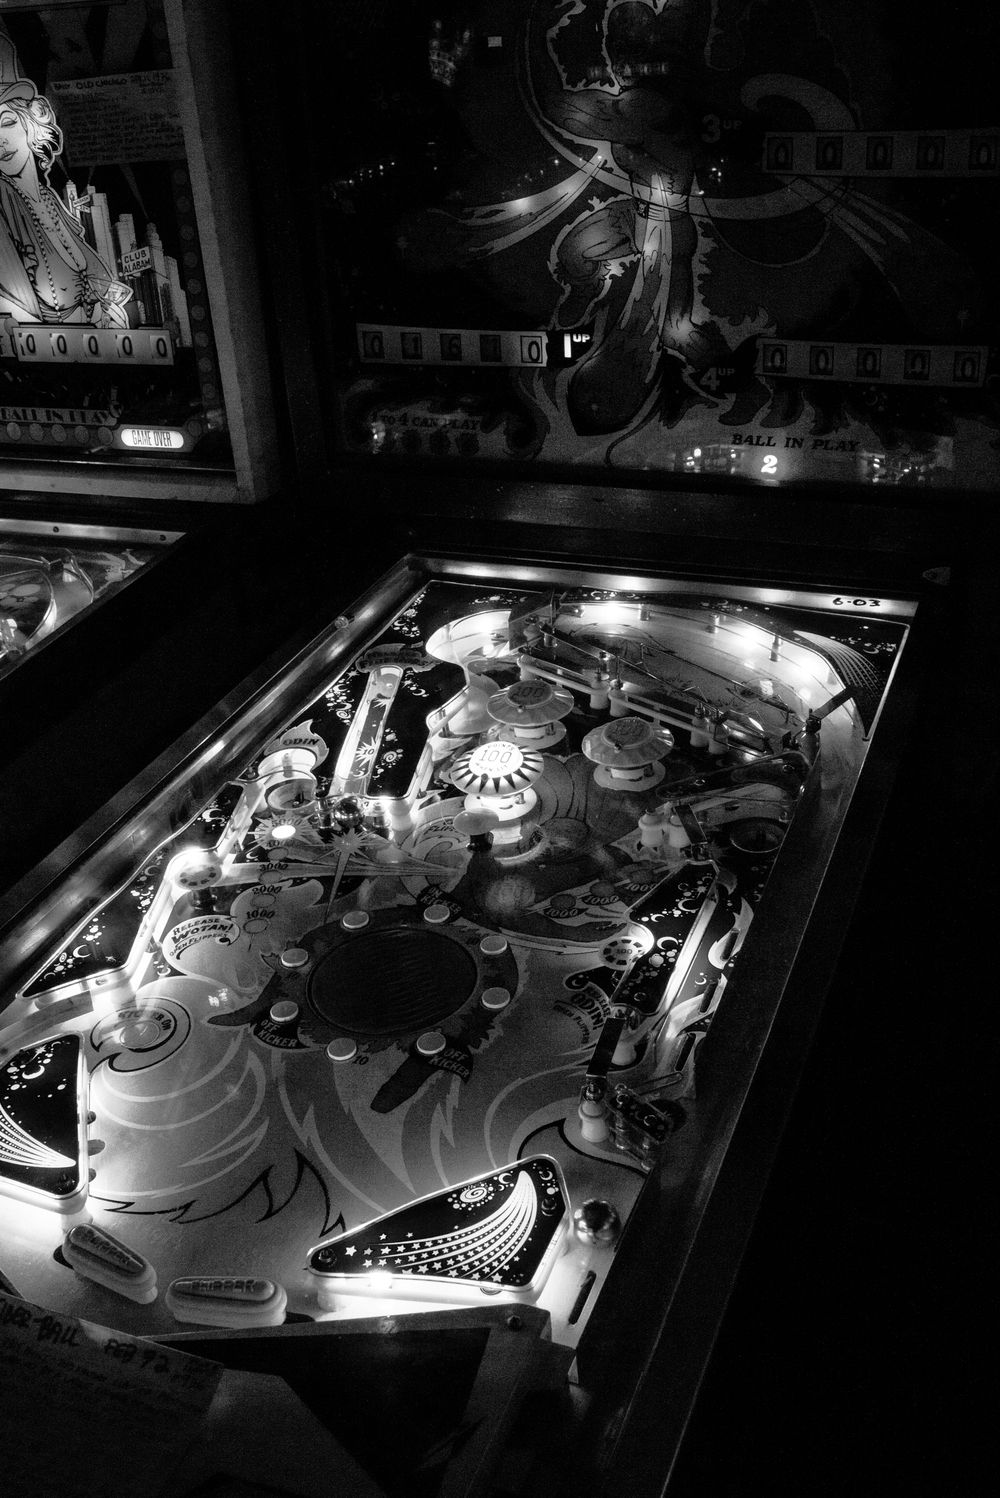 The famous  Fireball  machine from 1972 in action, ready for a round of play. Photo: Trey Takahashi